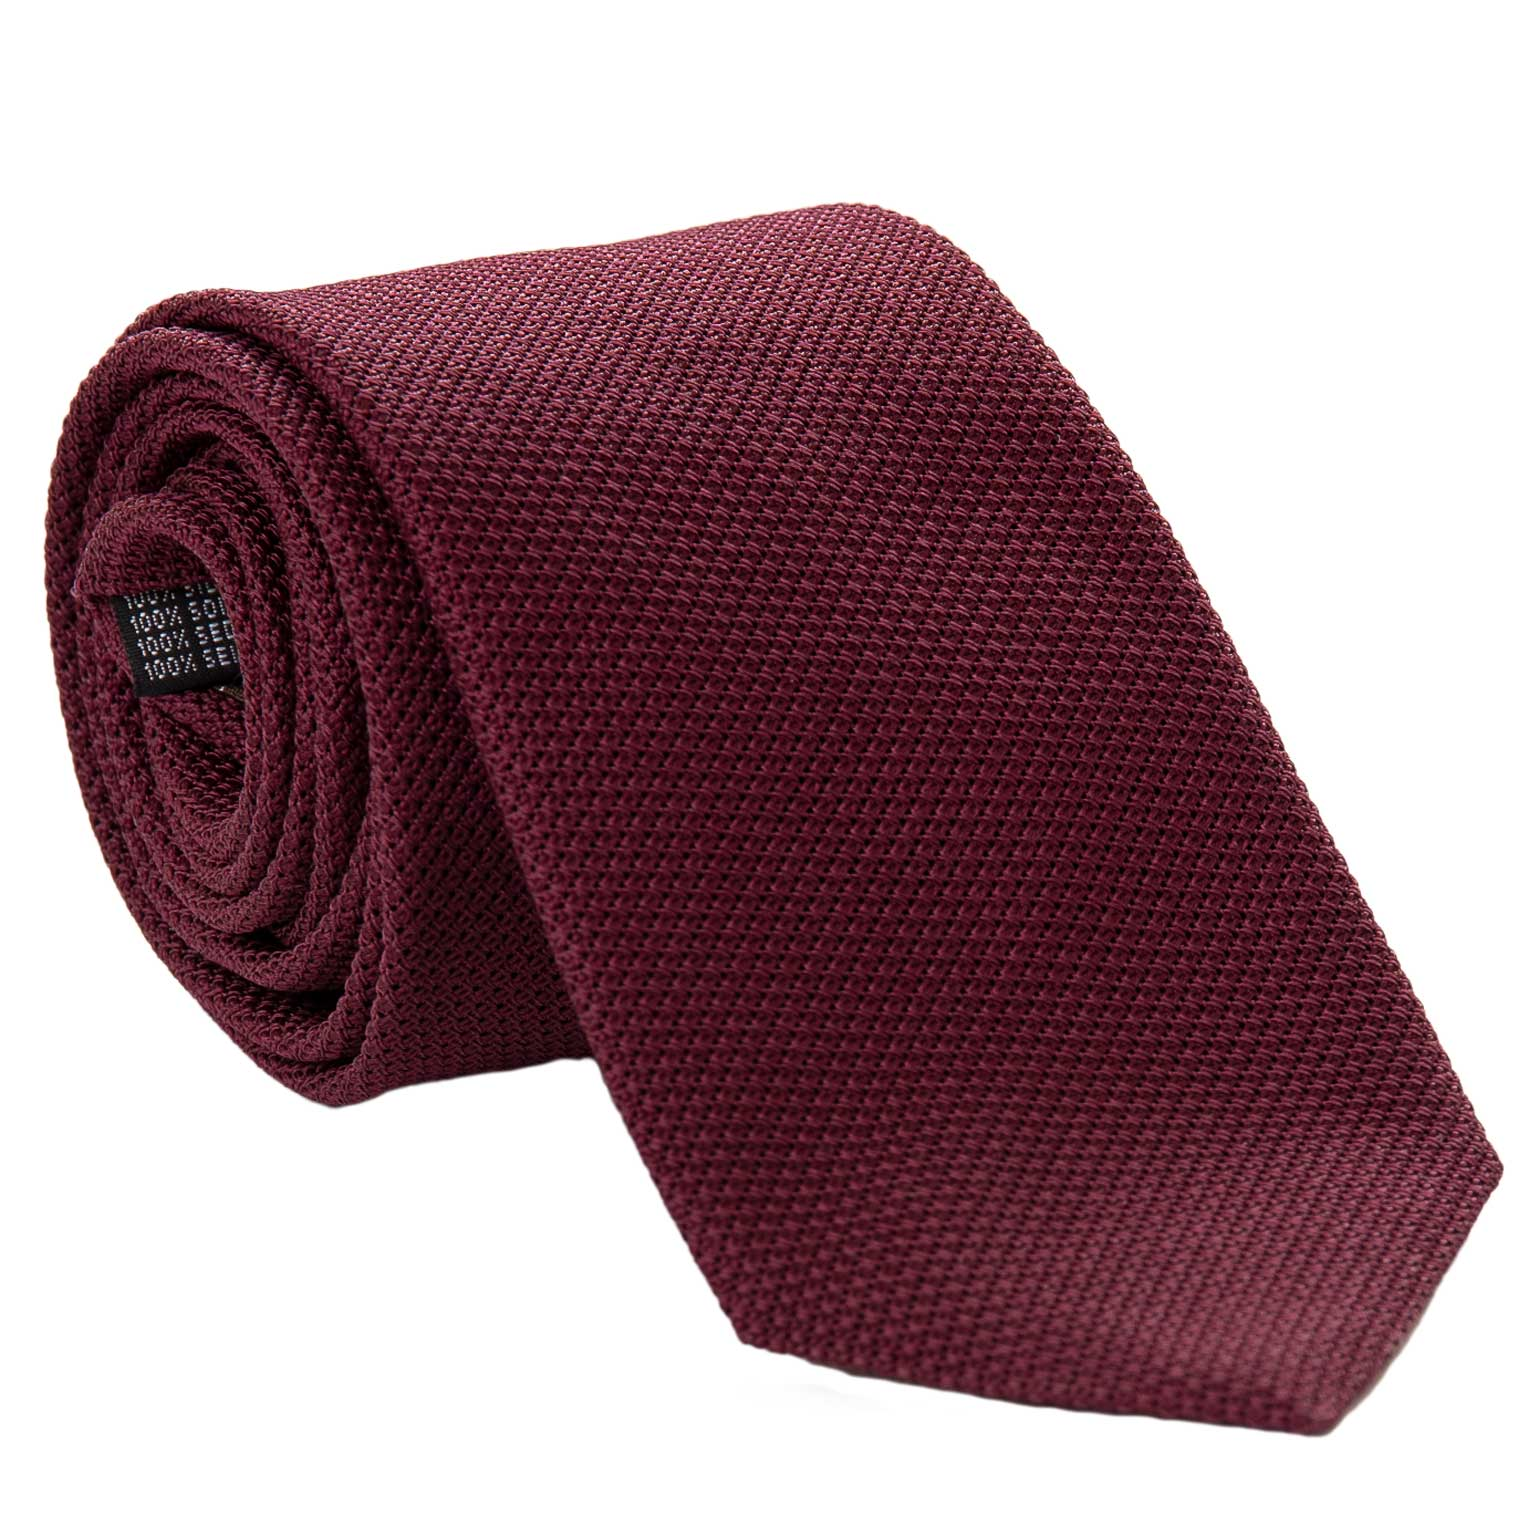 Extra Long Grenadine Silk Tie - Solid Burgundy